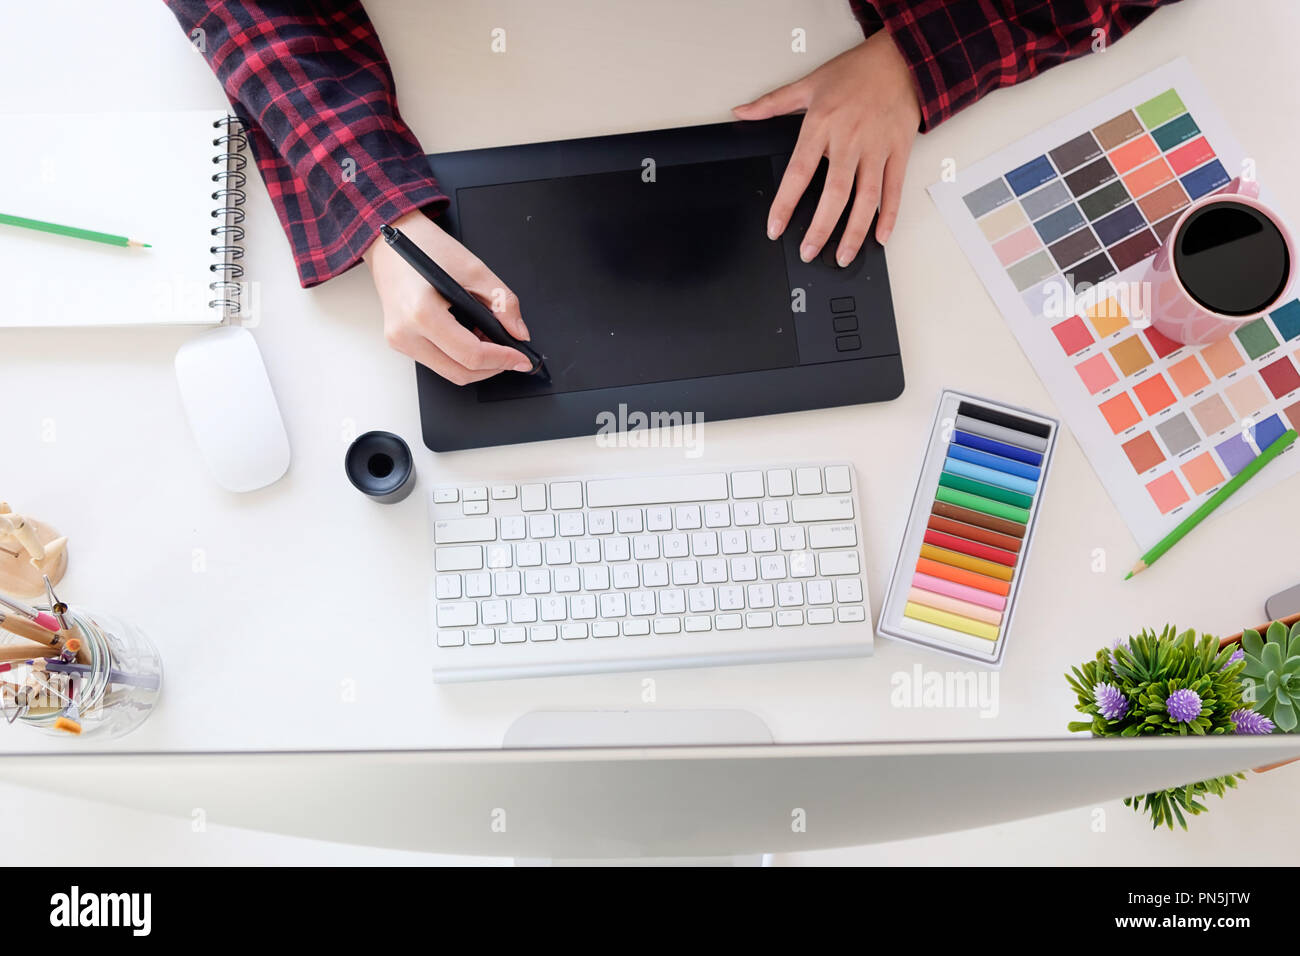 Top view a artist workplace with graphic designer working on workspace desk Stock Photo - Alamy